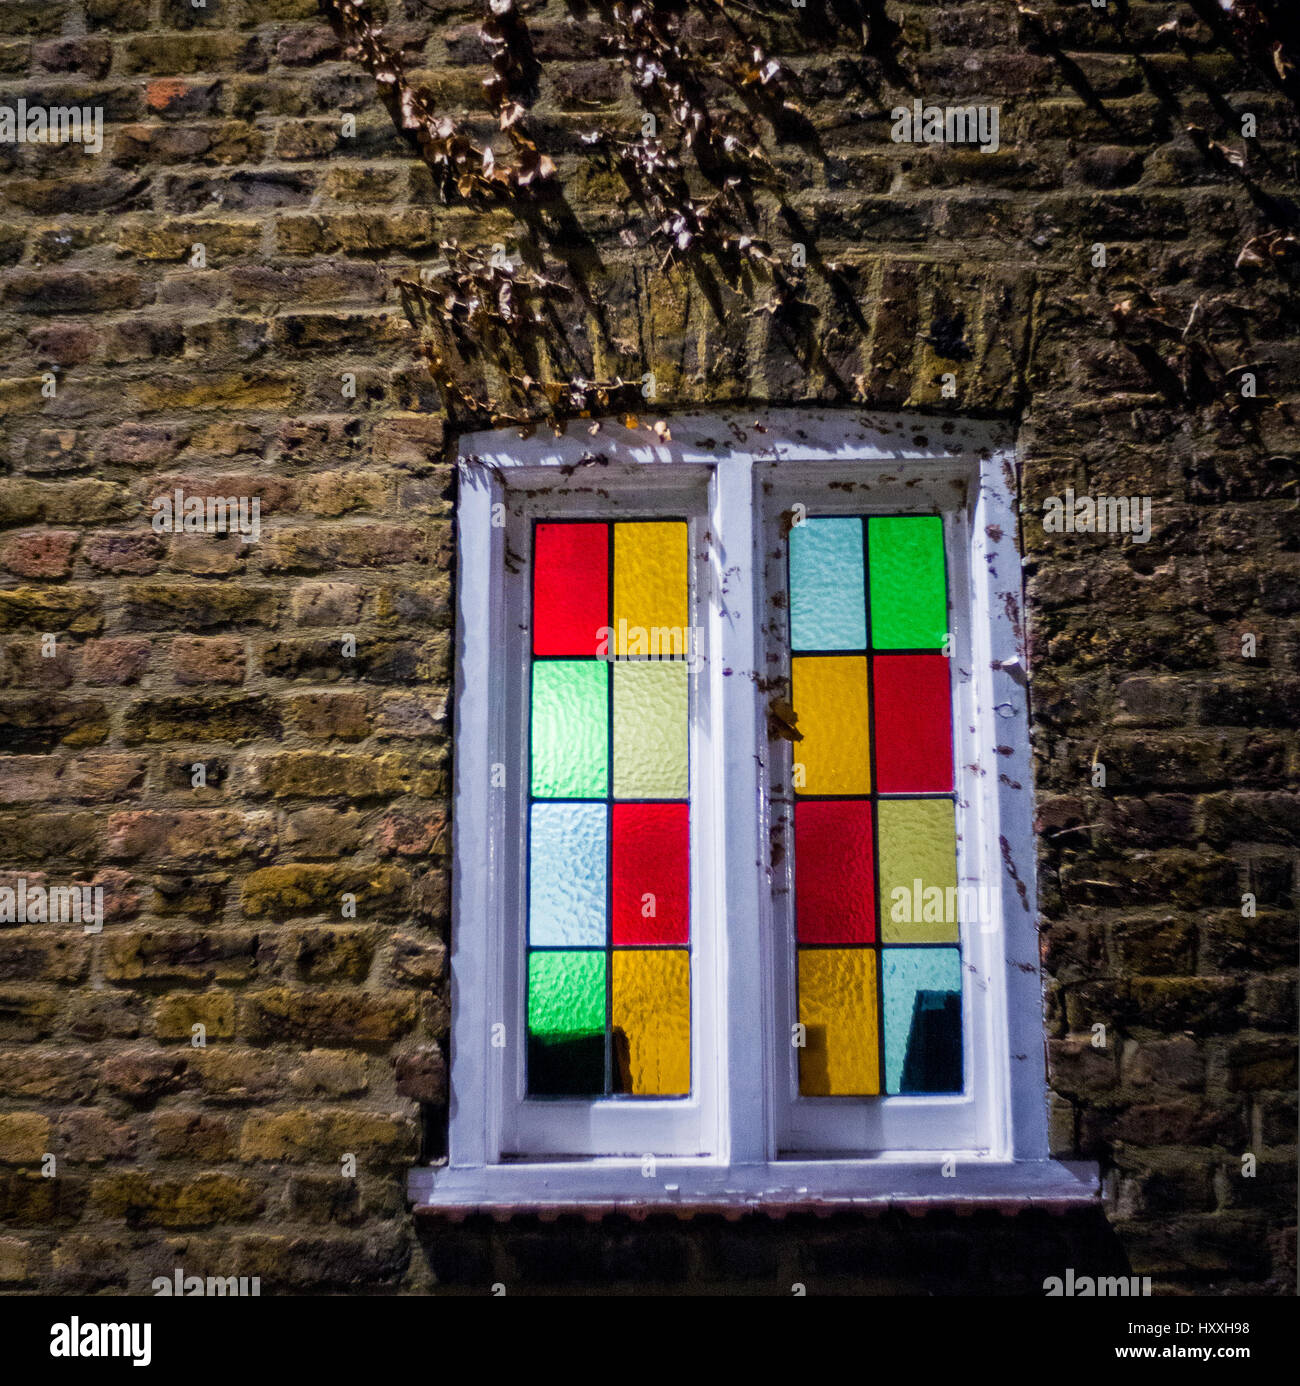 stained glass window illuminated white painted window frame in brick wall - Stock Image